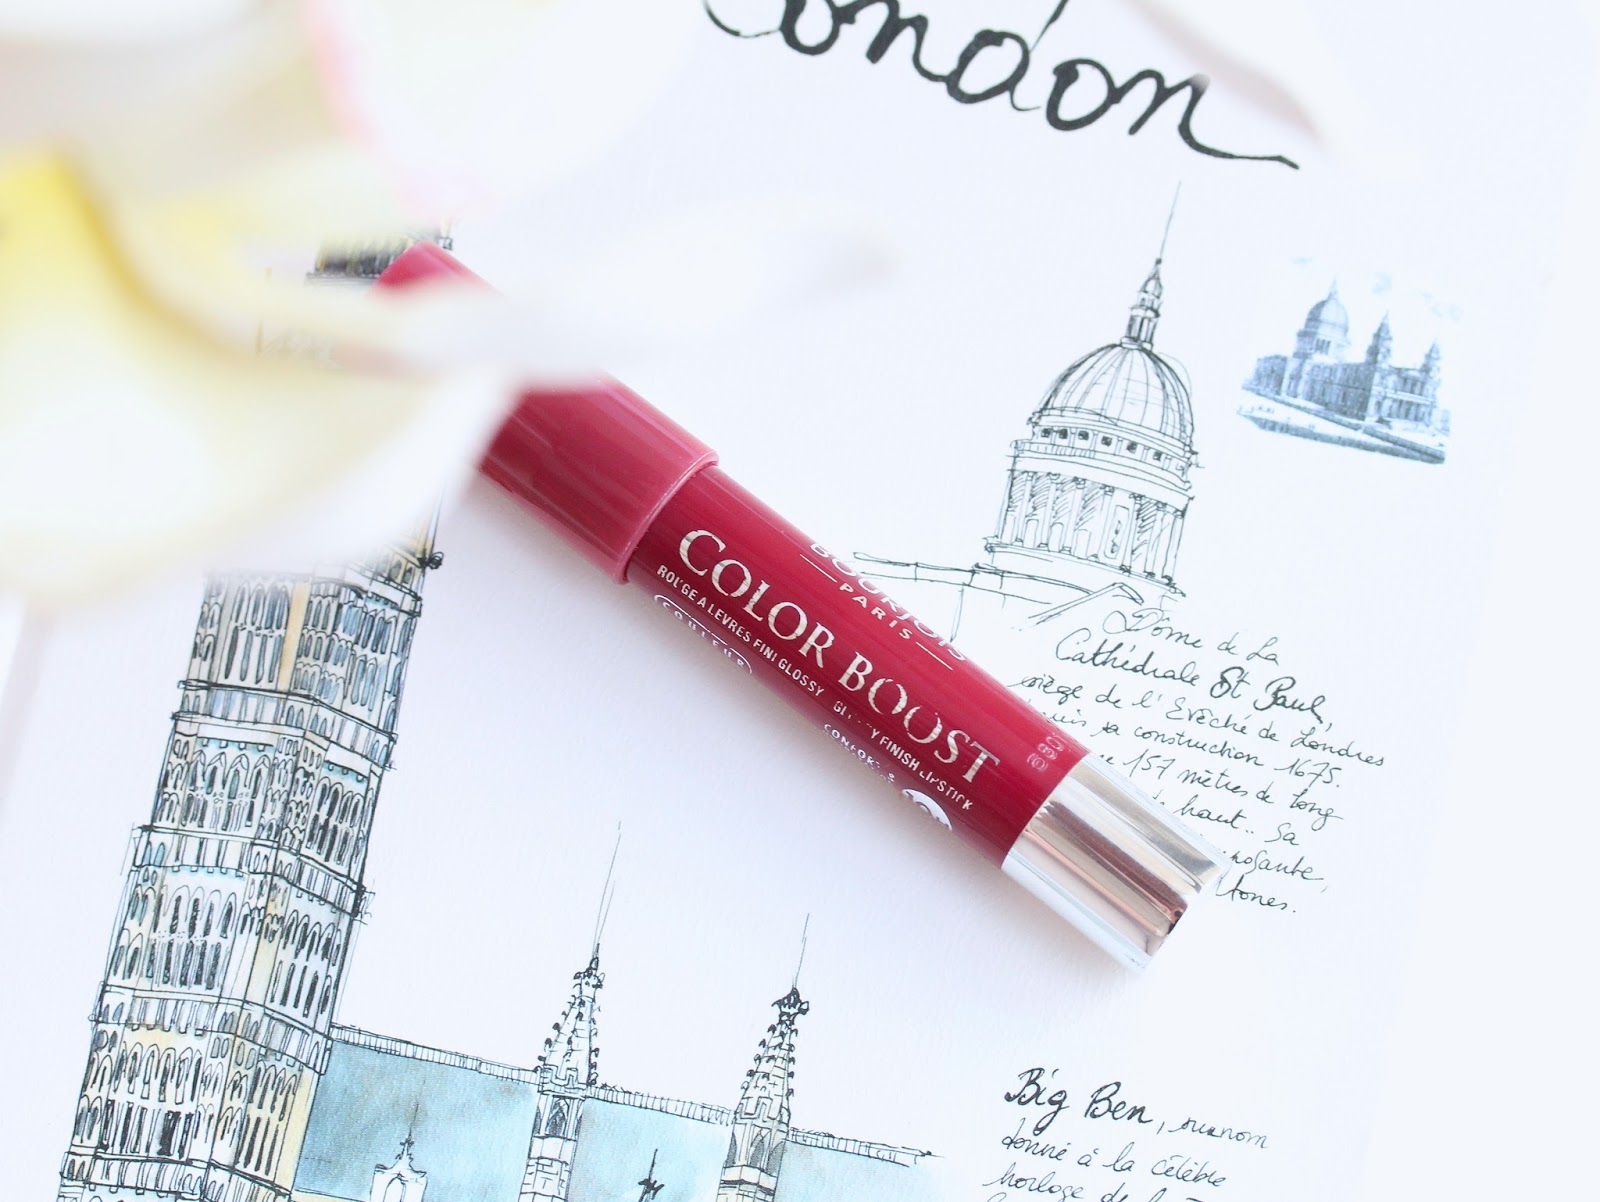 Bourjois Color Boost Lip Crayon in Plum Russian